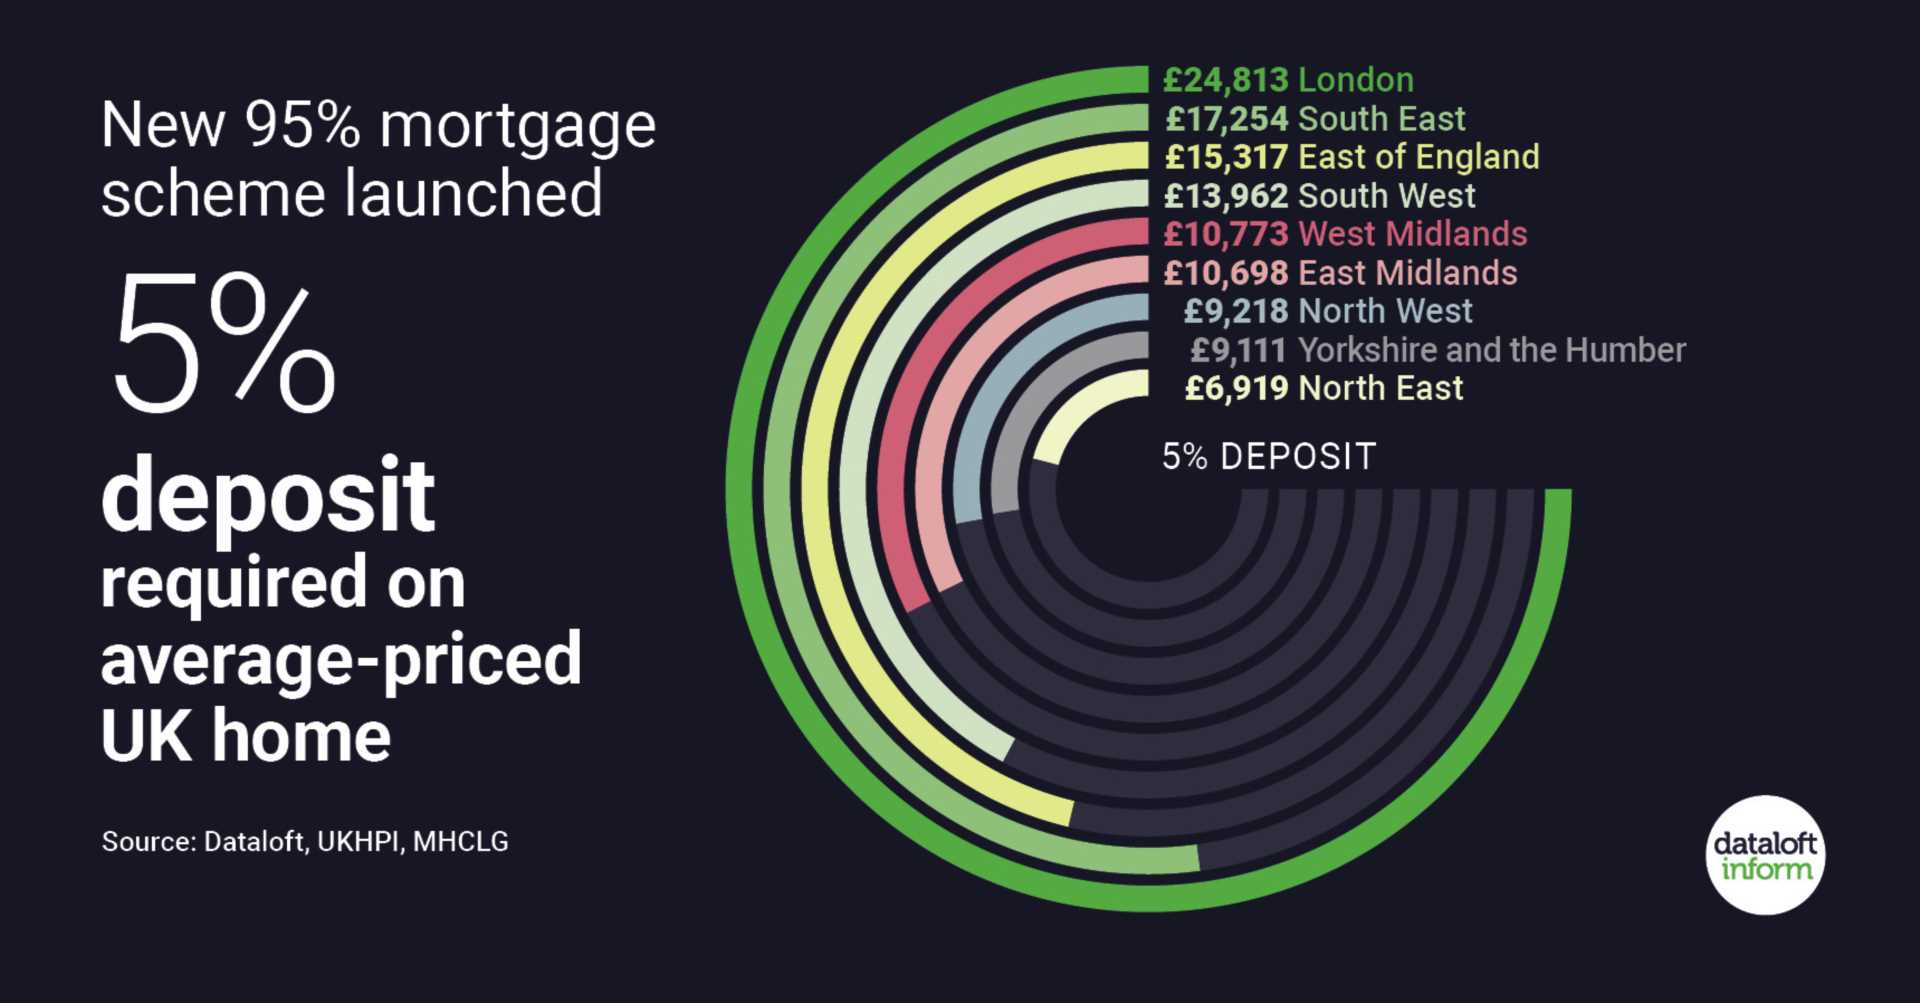 95% mortgage scheme launched